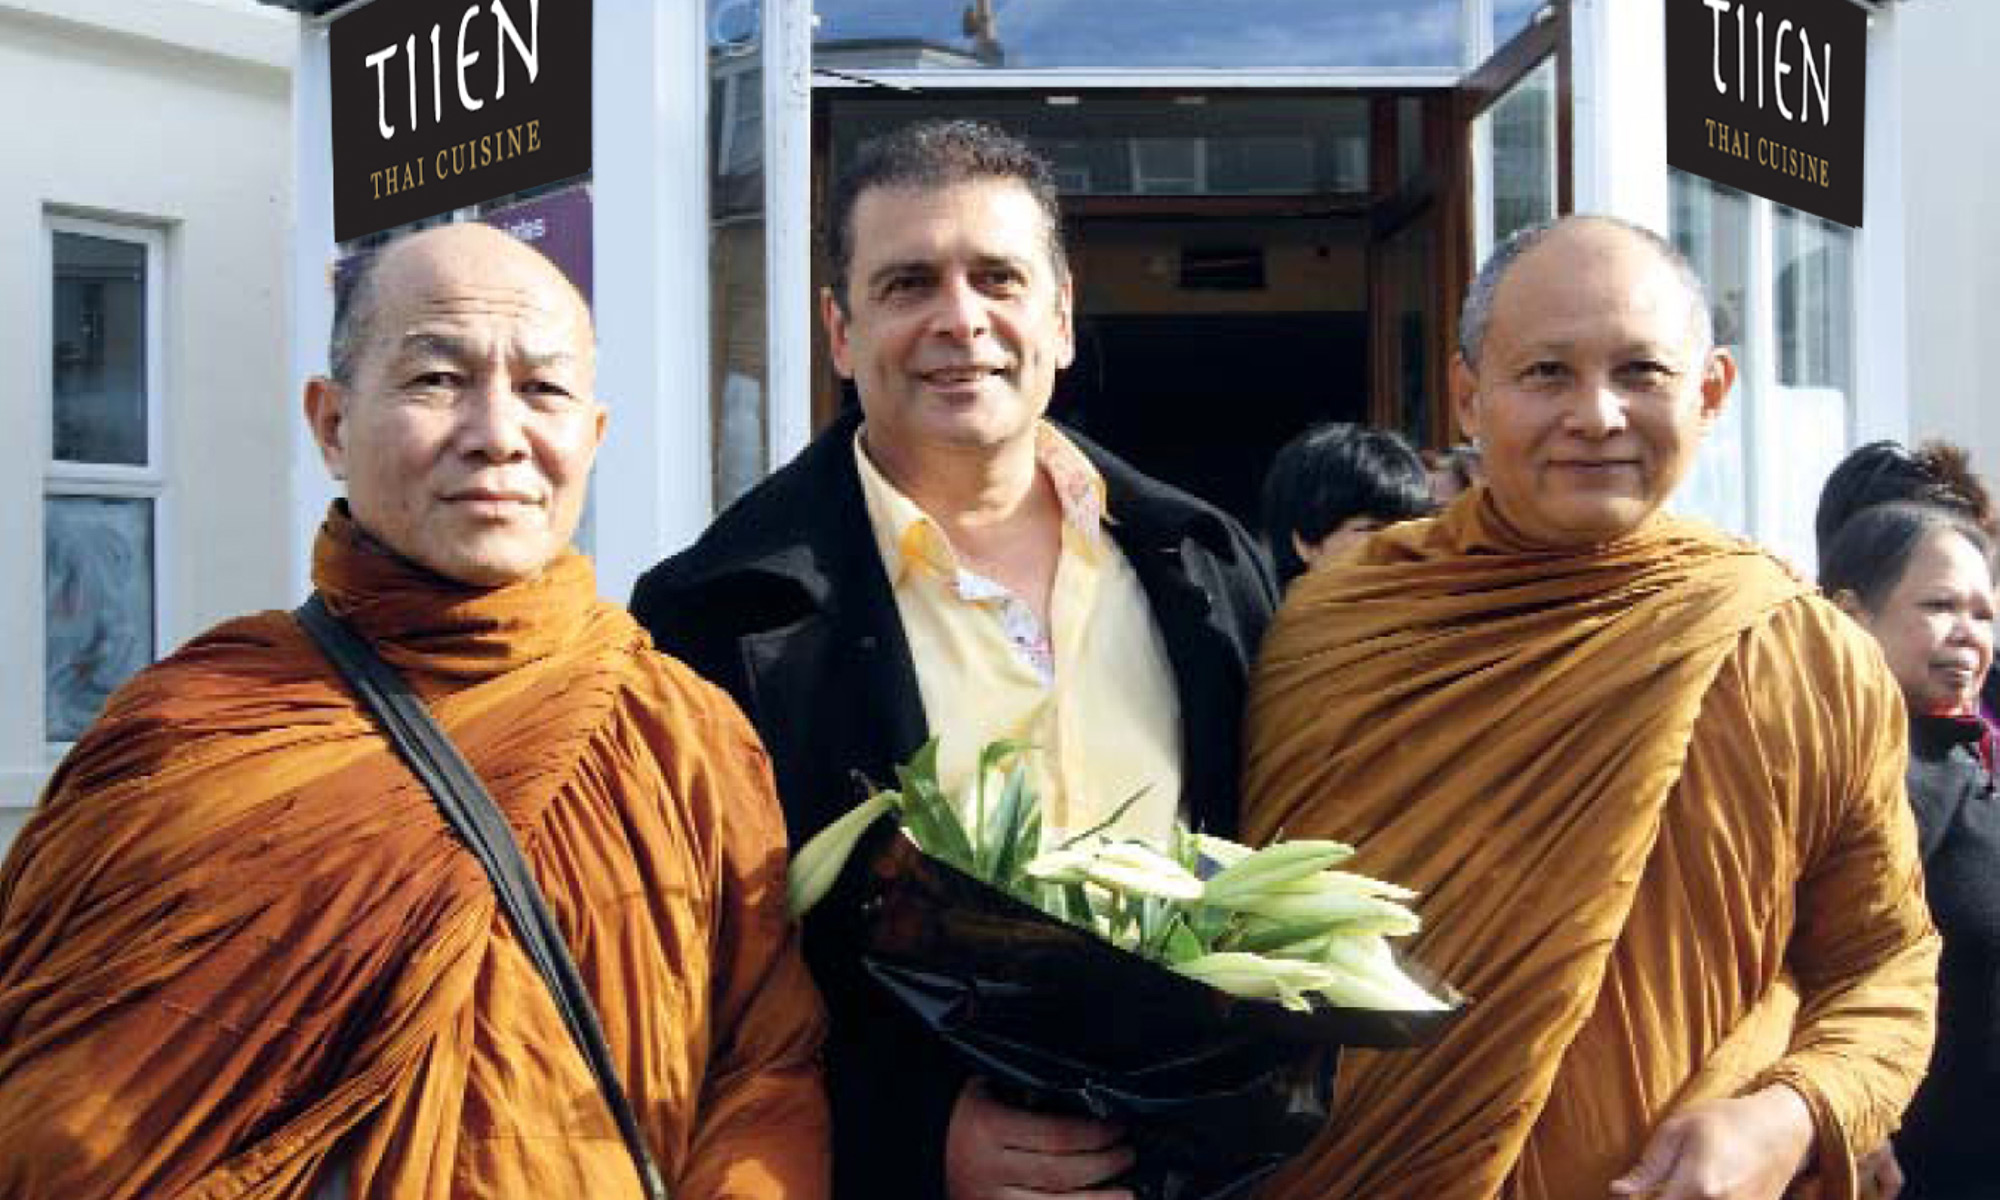 tiien-monks_2000x1200.jpg